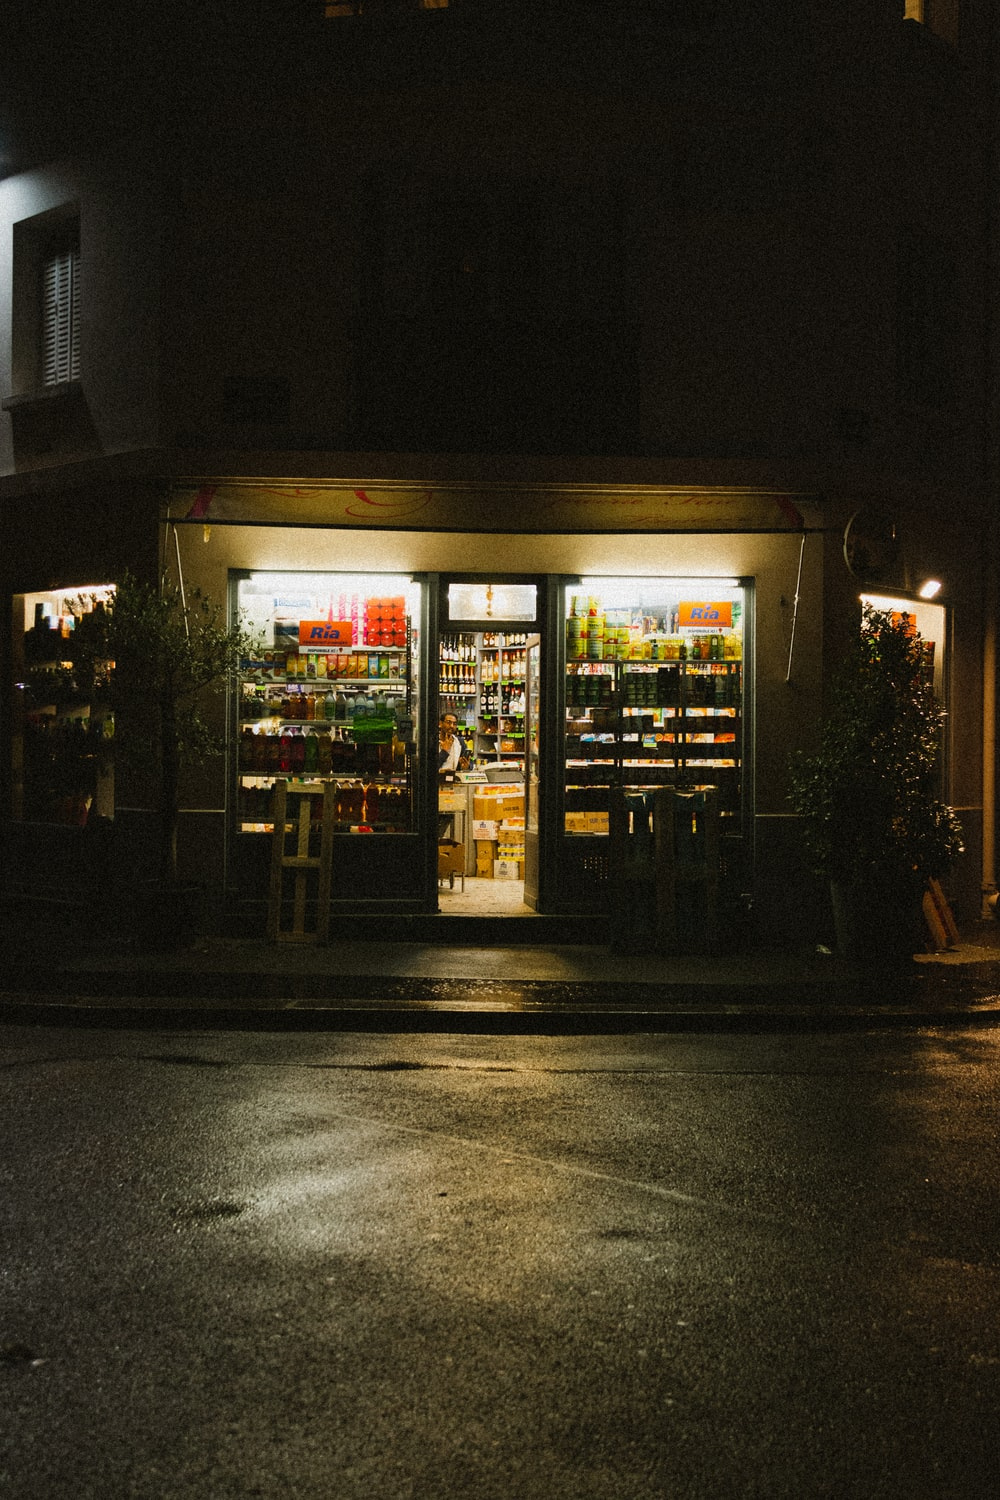 lighted store during night time